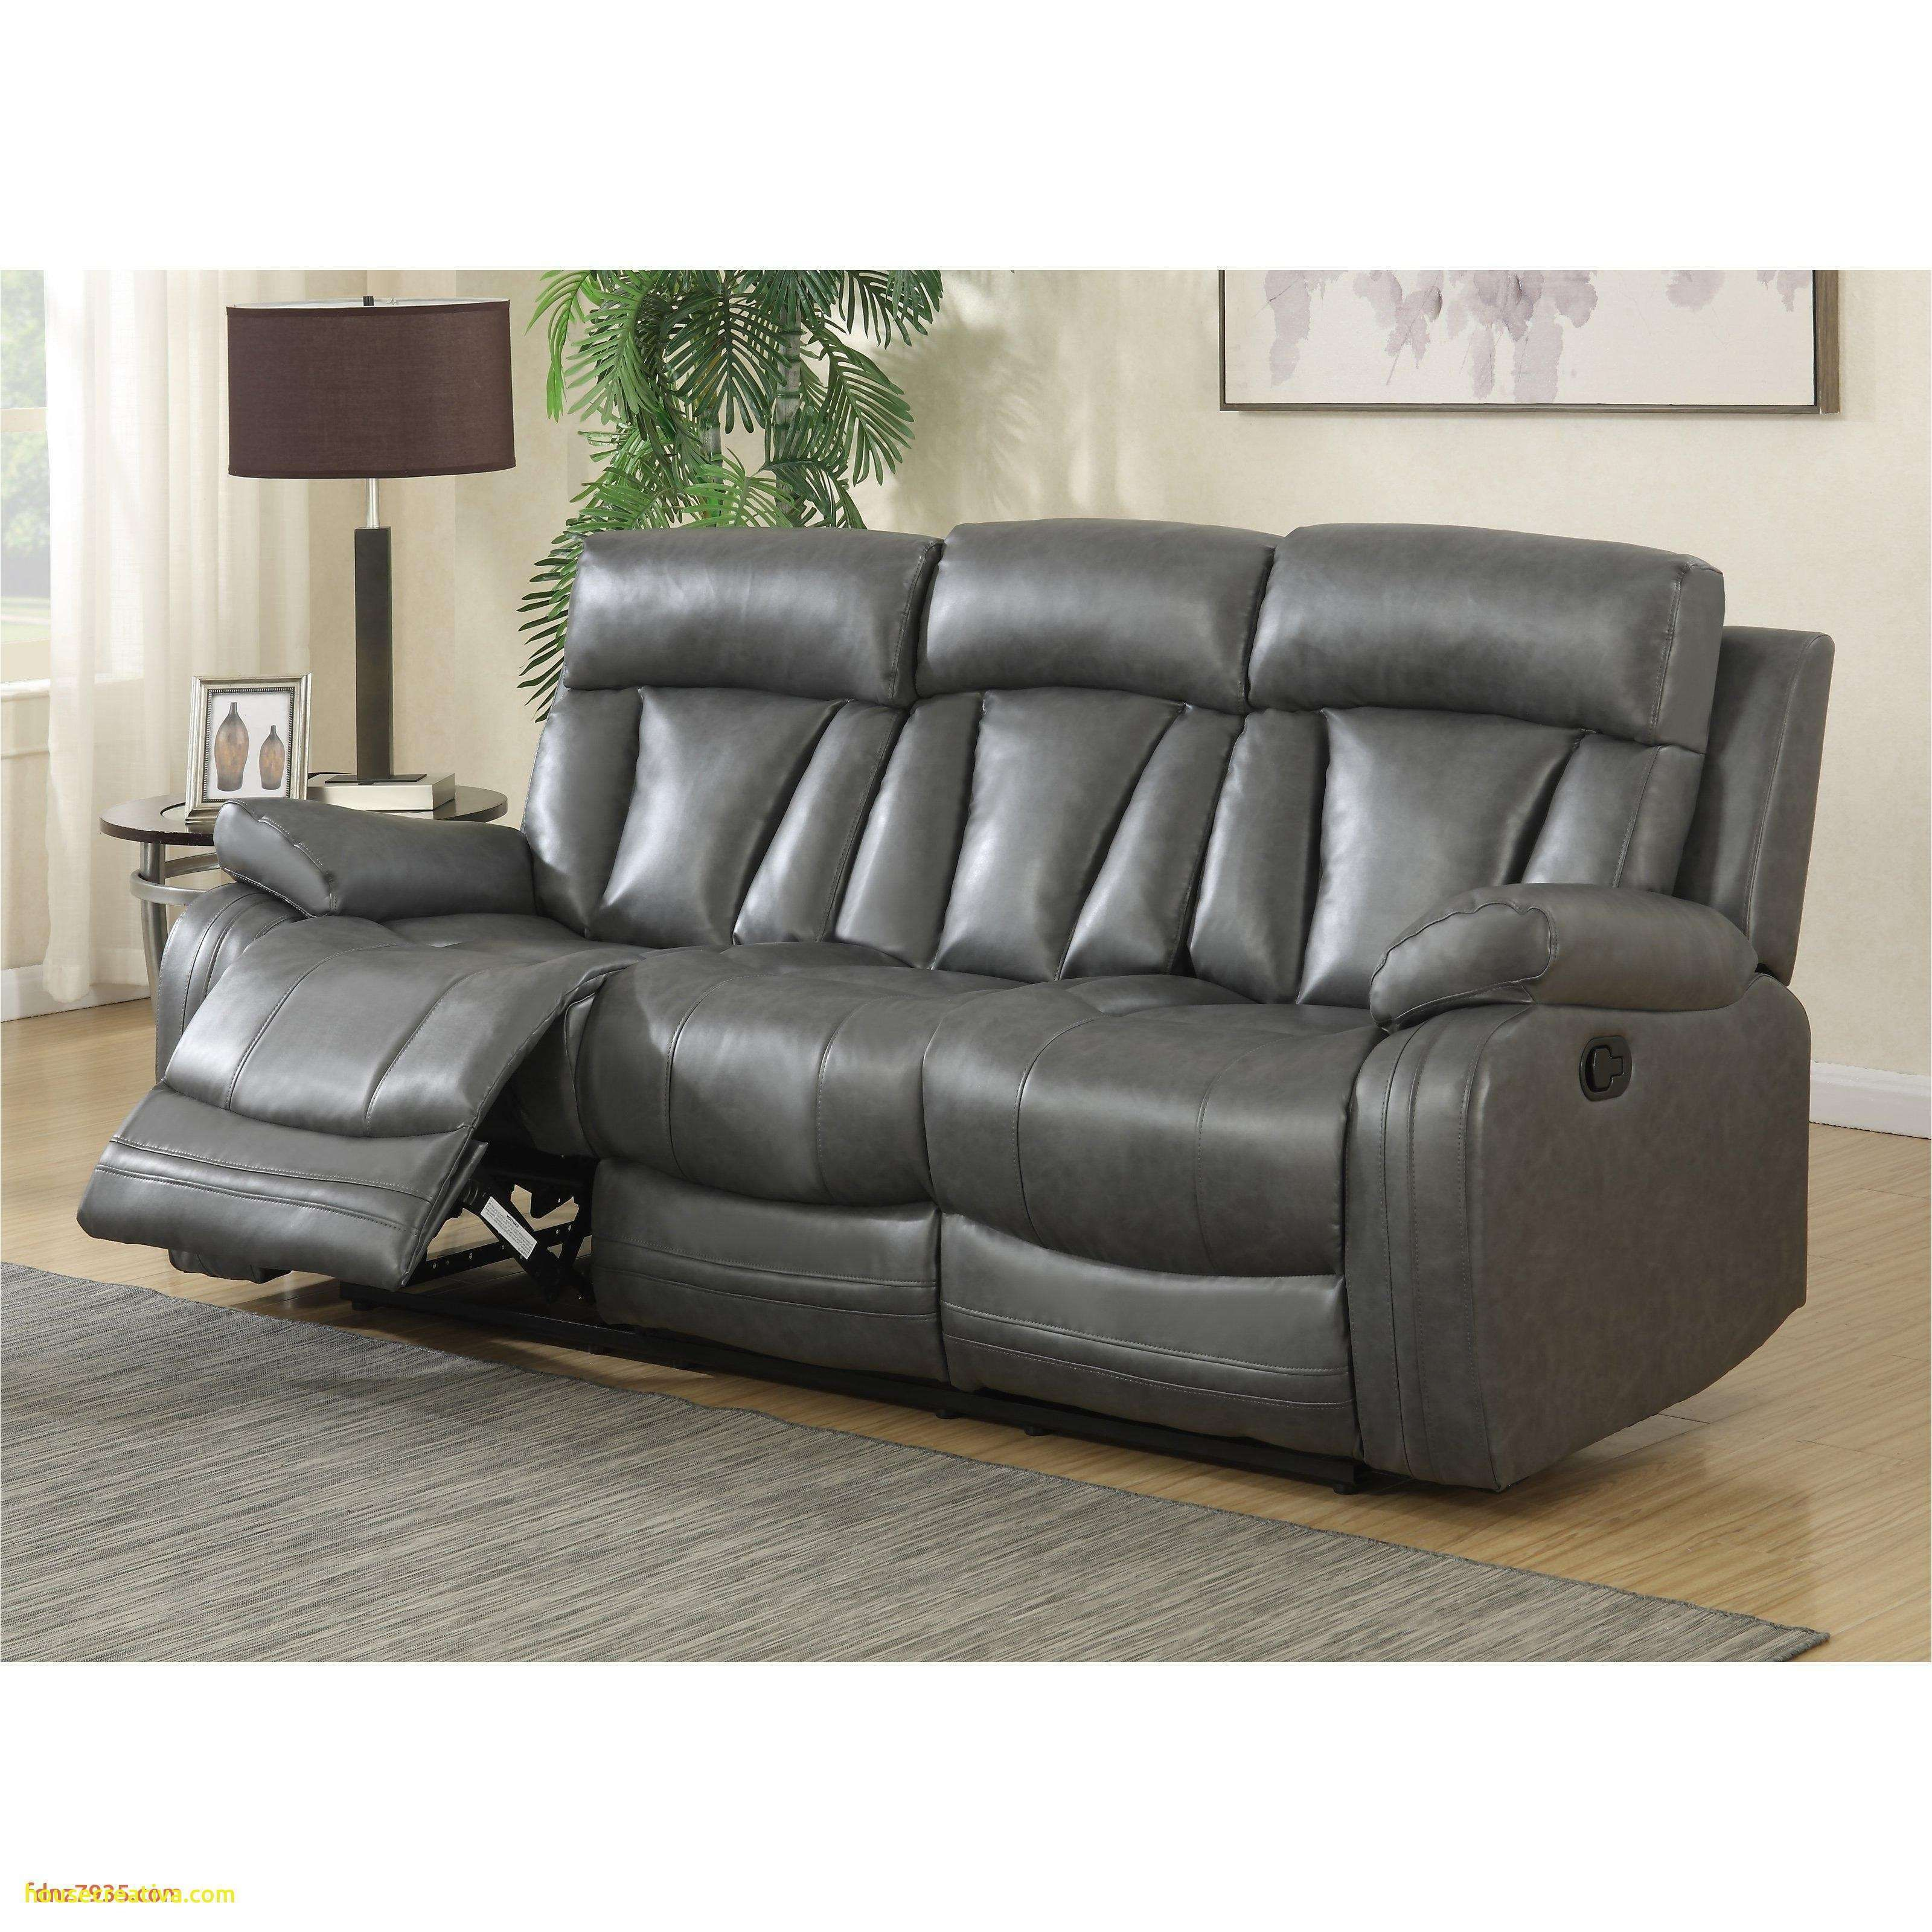 Beautiful Gray Tufted Sofa Homedecoration Homedecorations Homedecorationideas H Sectional Sofa With Chaise Sofa And Loveseat Set Leather Sofa And Loveseat